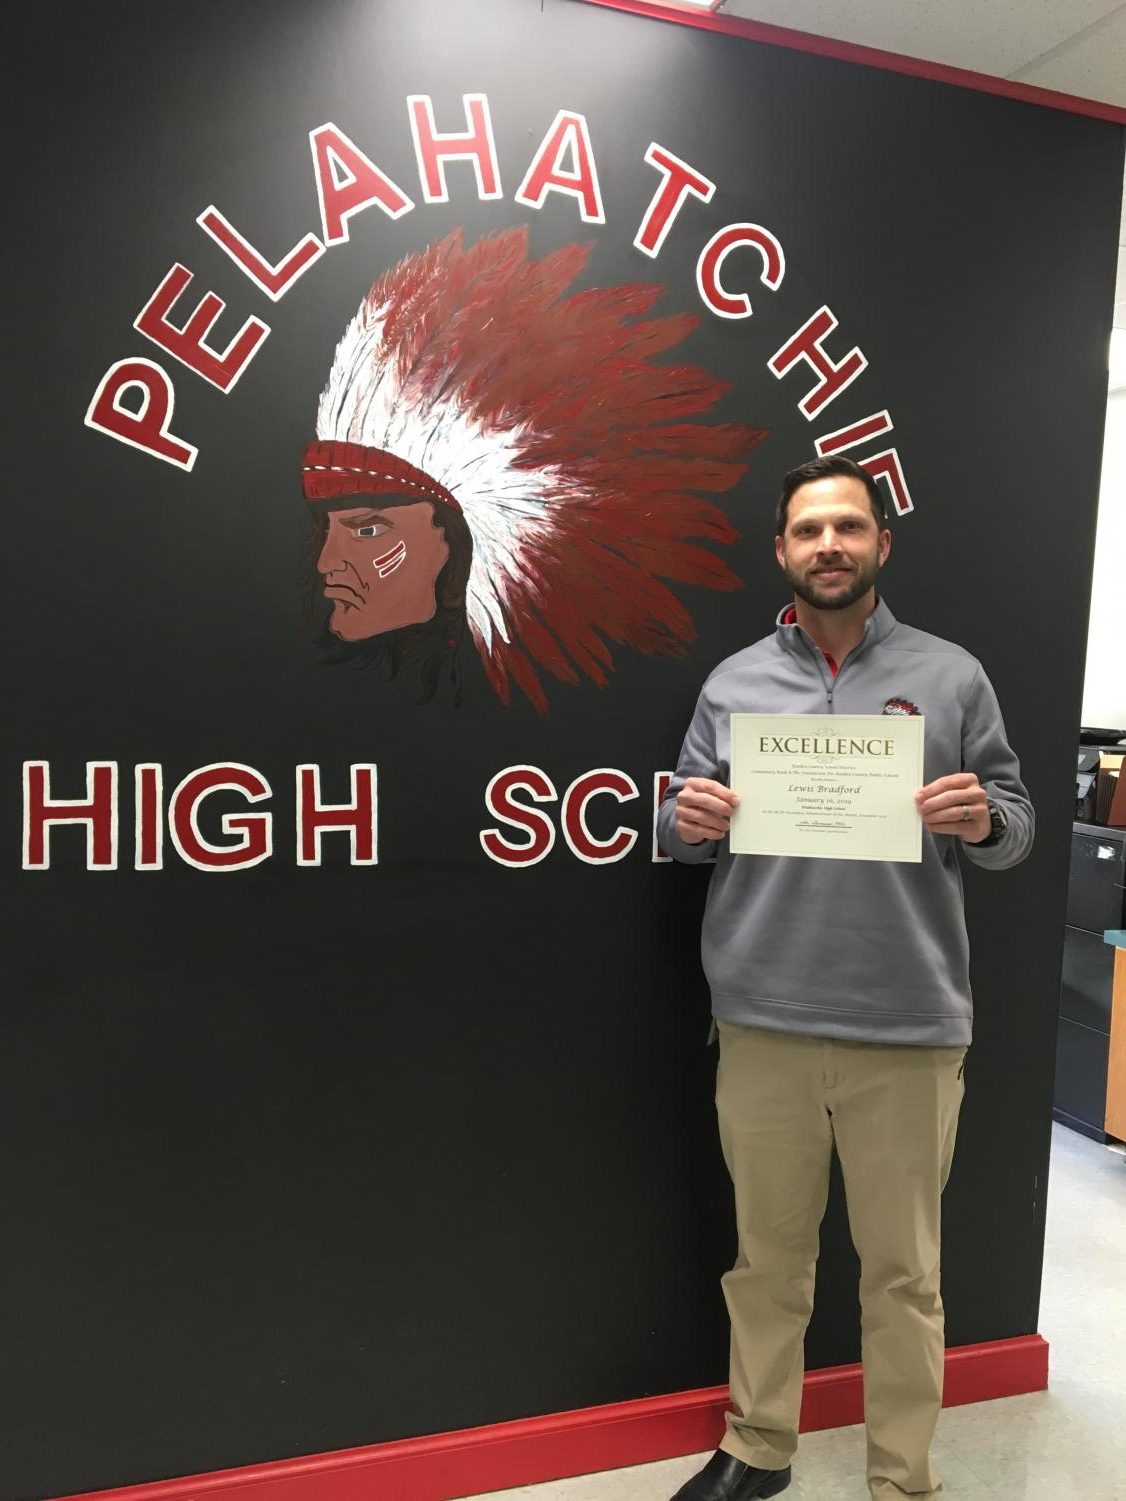 Lewis Bradford smiles proudly with his certificate for Administrator of the Month in his hand.